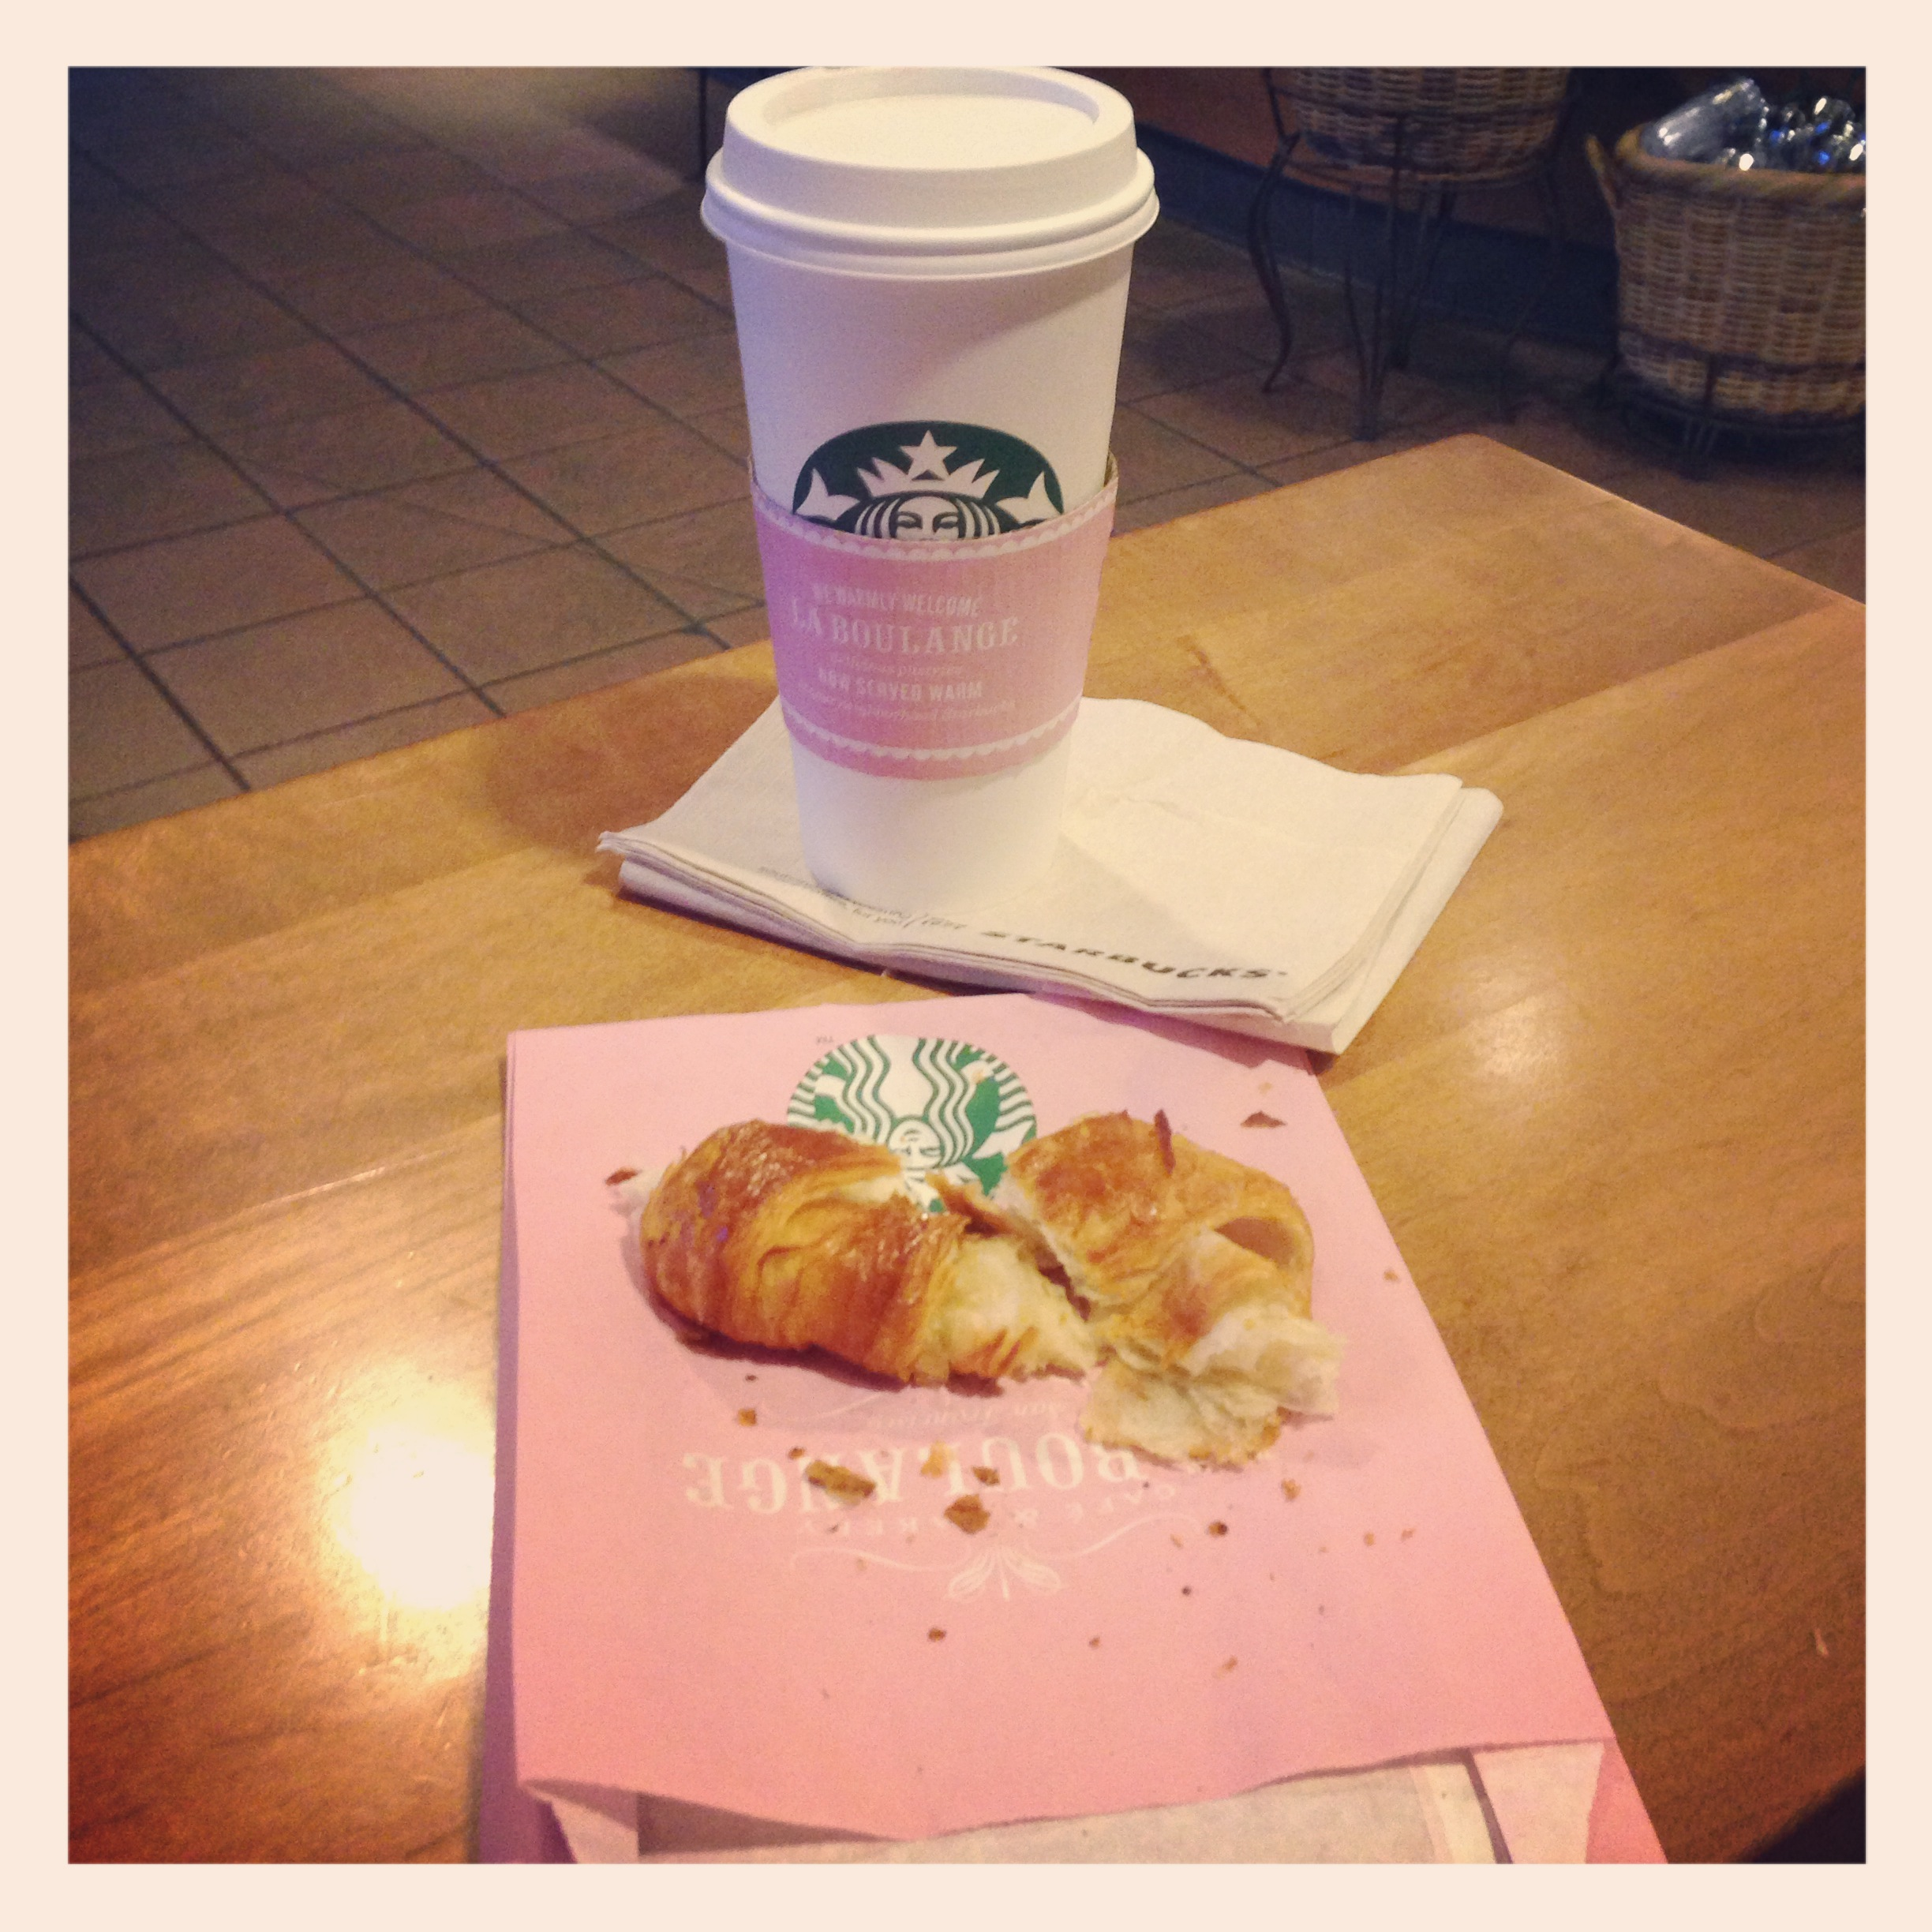 La Boulange launch croissant and coffee